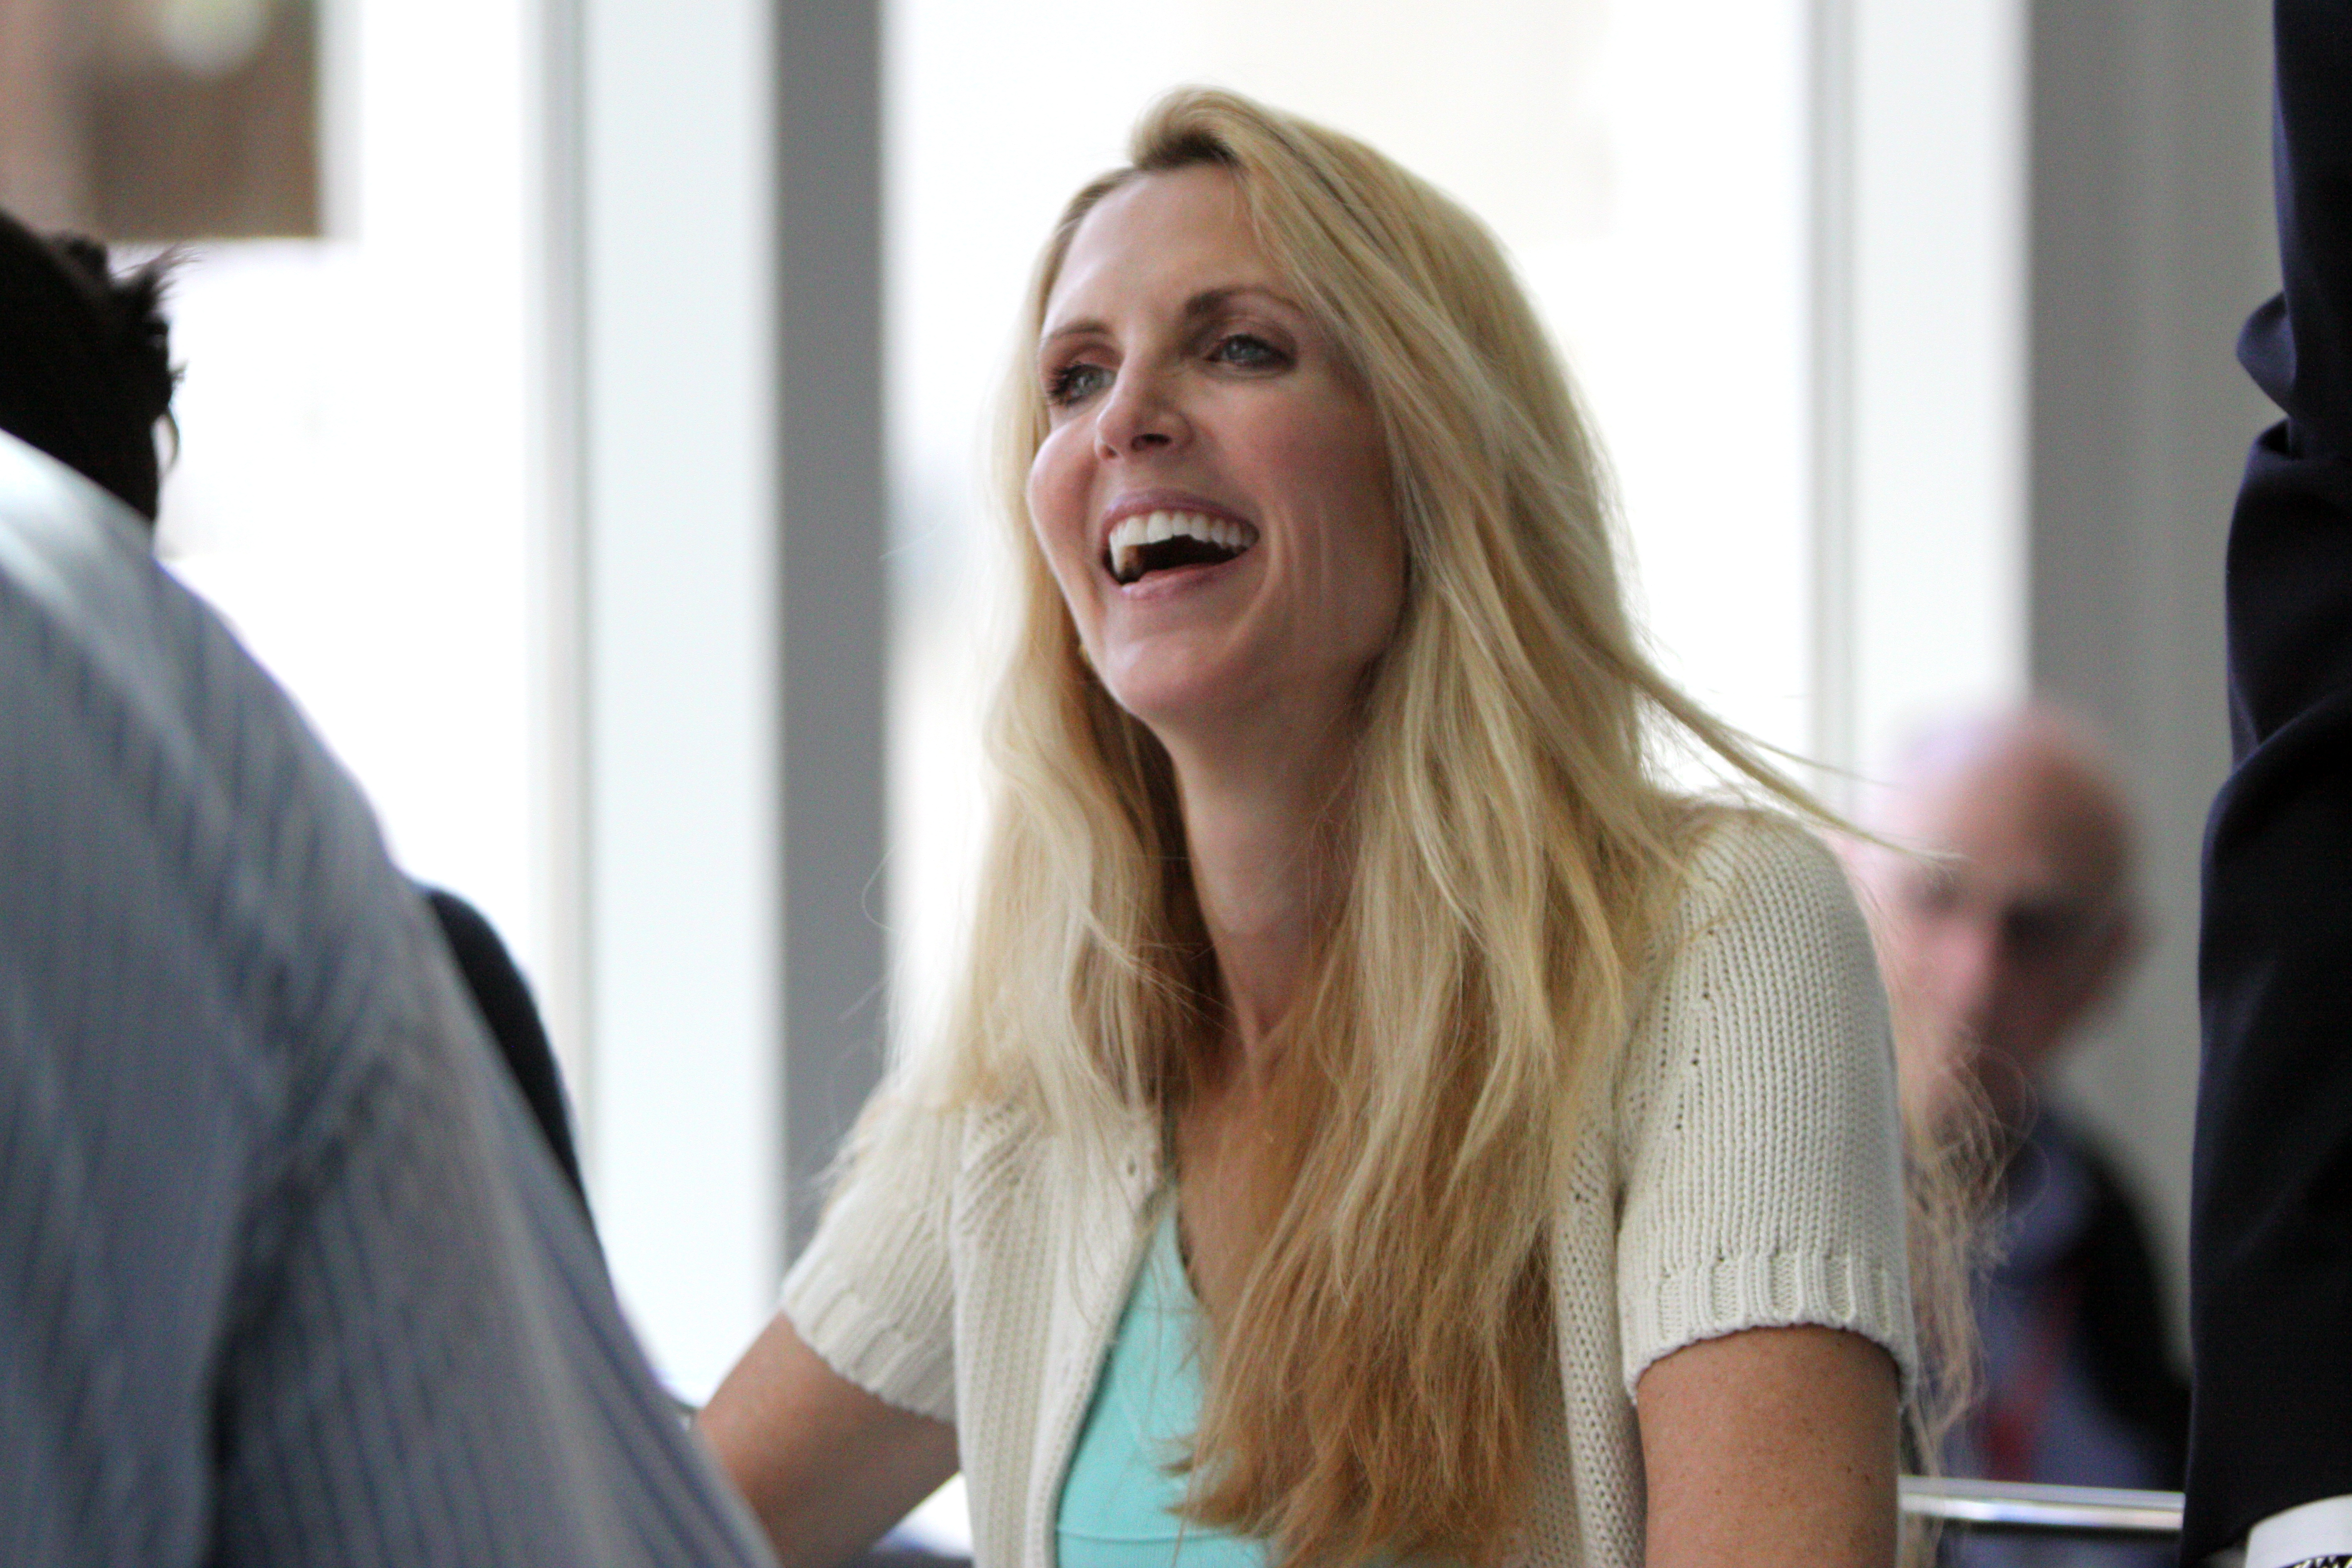 Ann coulter is dating jimmie walker